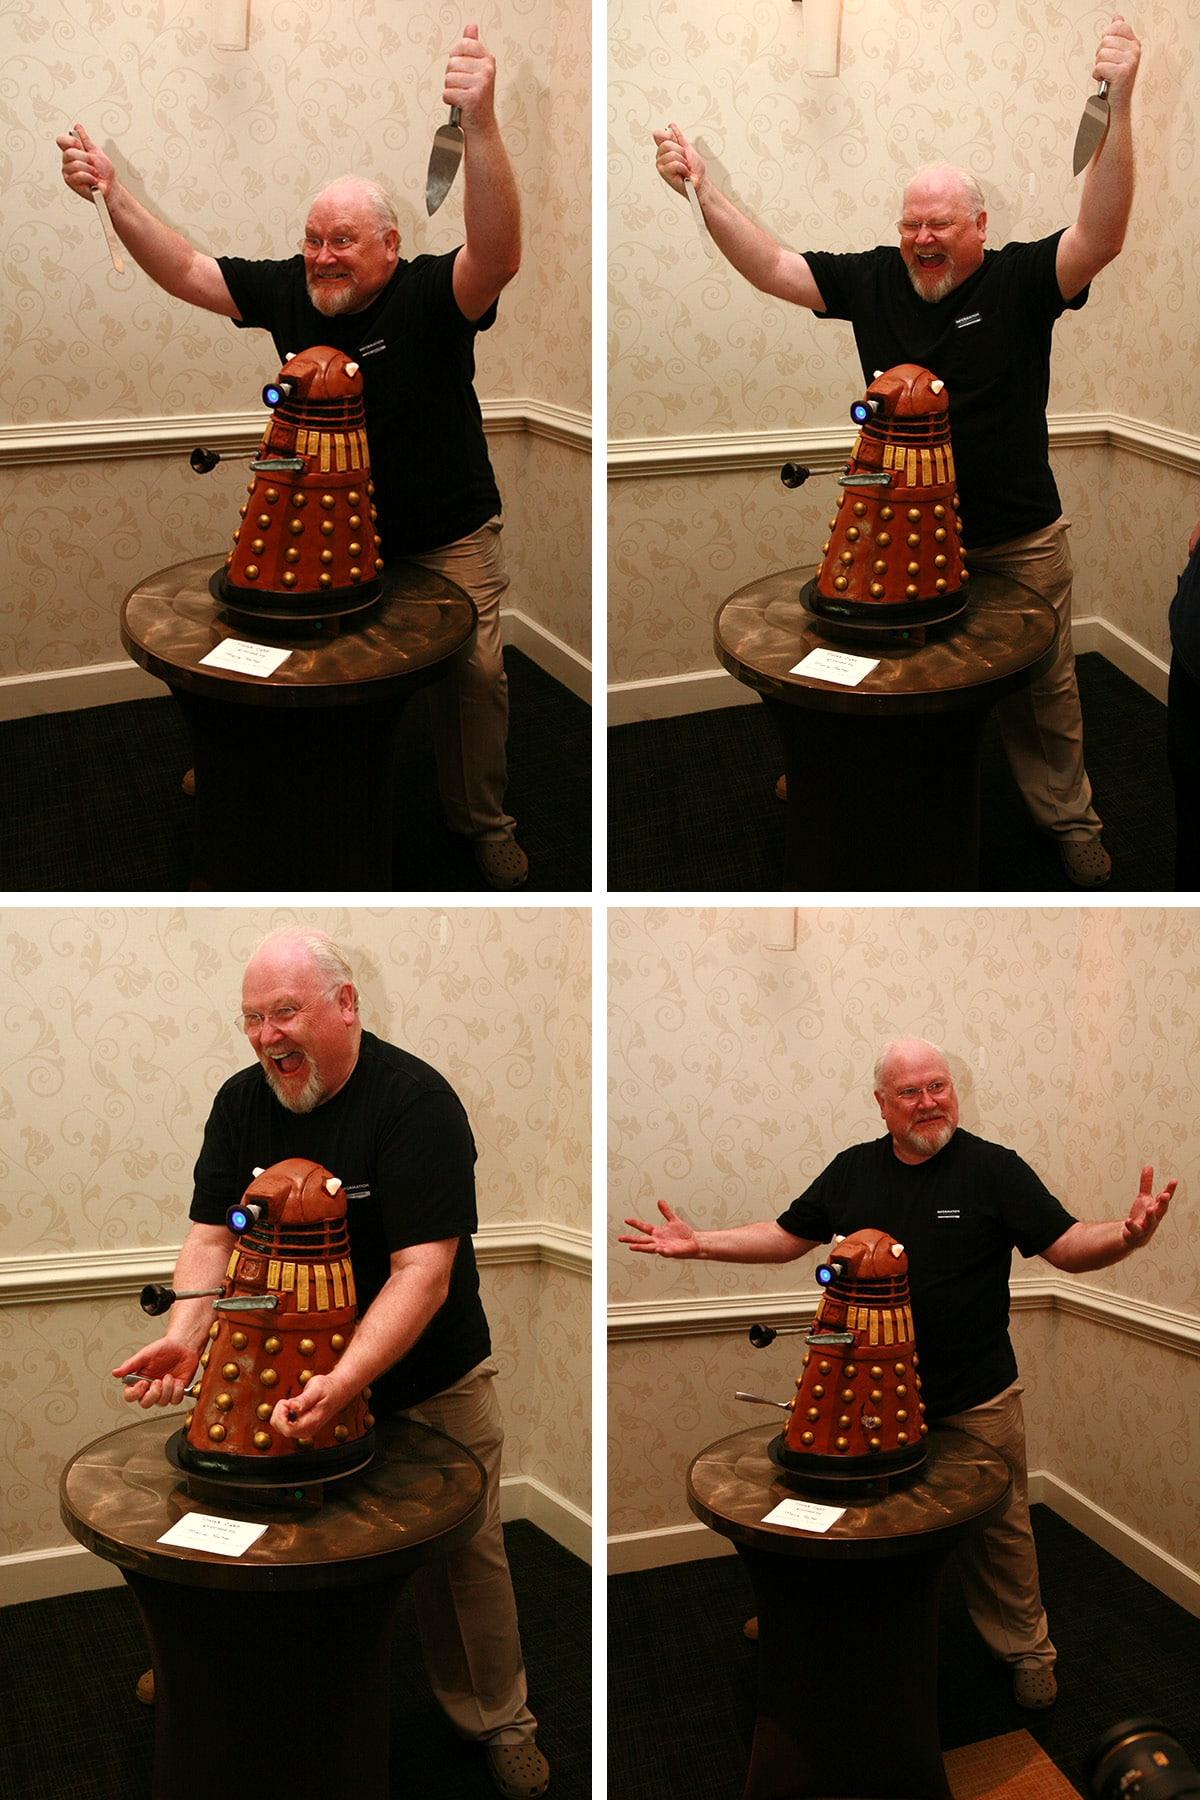 A 4 part image showing various views of Colin Baker joyously destroying a Dalek.